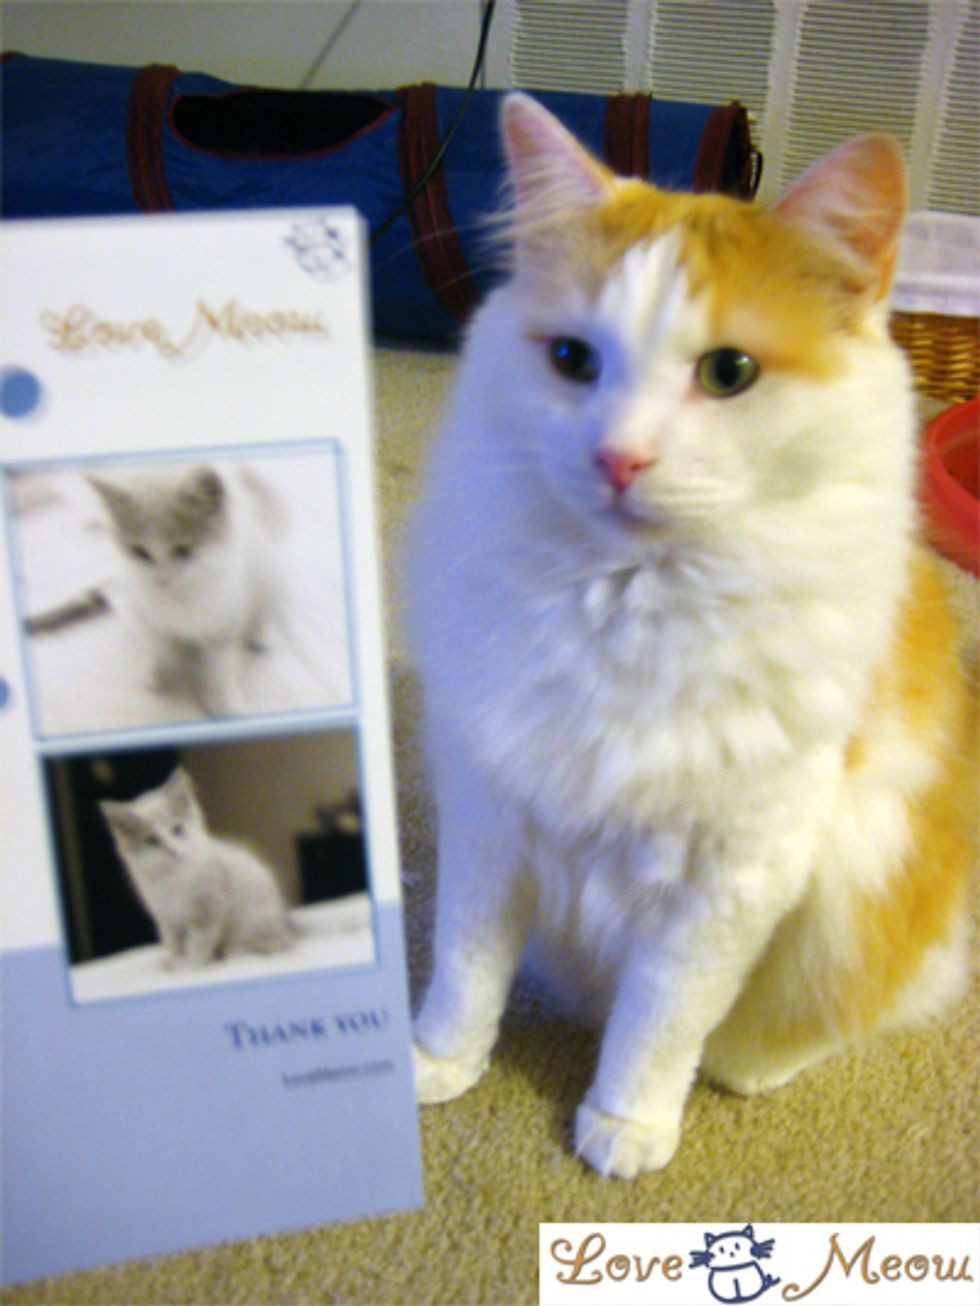 Nominate Love Meow for Best Facebook Fan Page